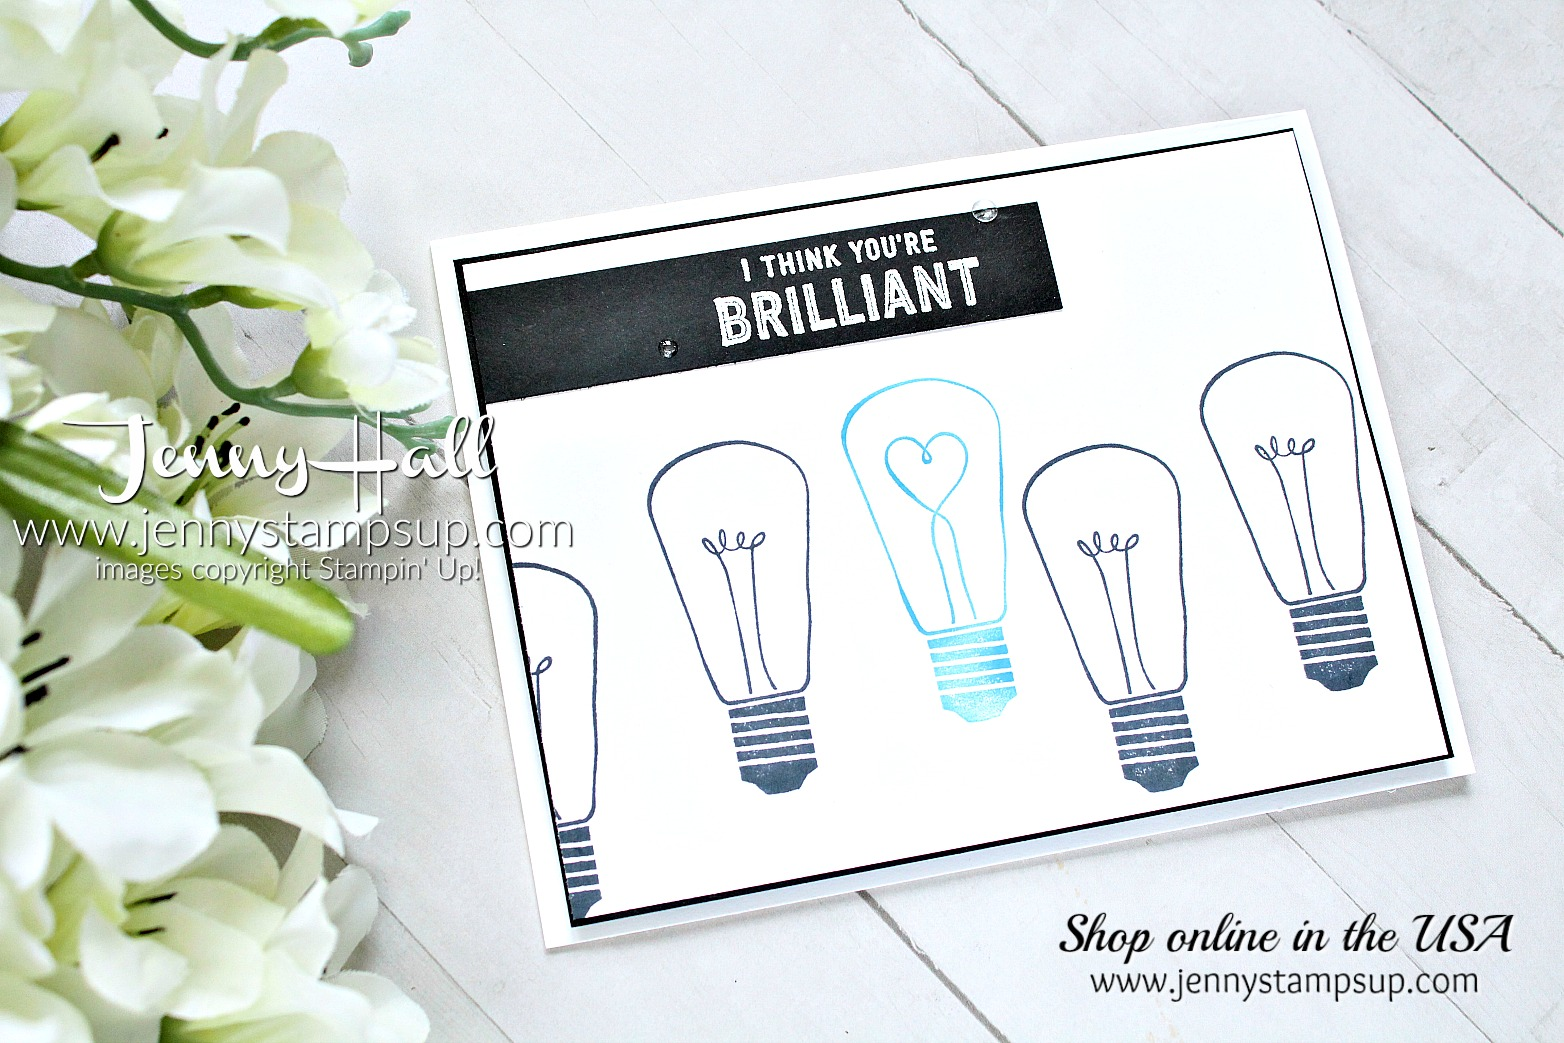 Autism Awareness Blog Hop card created by Jenny Hall at www.jennyhalldesign.com for #cardmaking #stamping #stampinup #autismawarenessbloghop #autismmatters #autismawareness #jennyhall #jennyhalldeisgn #jennystampsup #wattsofoccasions #easystamping #lightitupblue